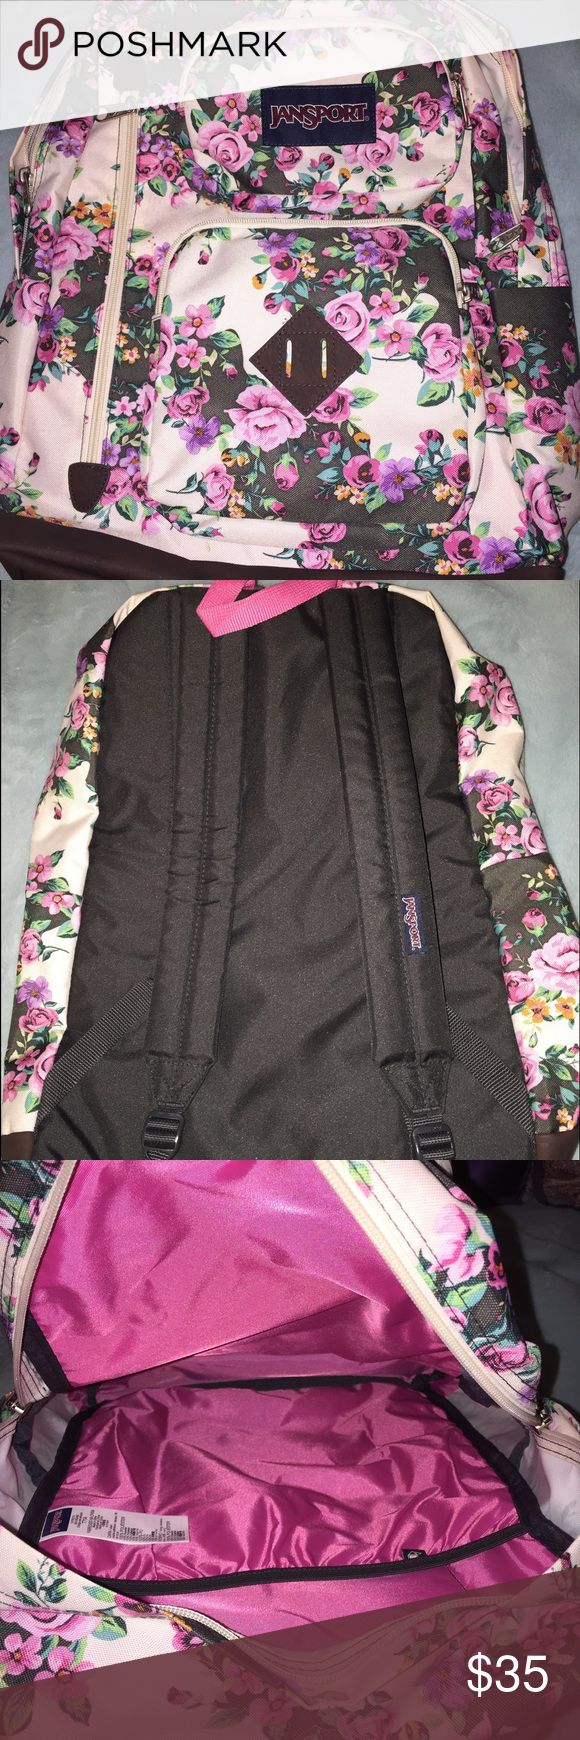 Floral jansport backpack Never used jansport backback, pretty floral print and pink inside, had a laptop compartment inside as well. Jansport Bags Backpacks